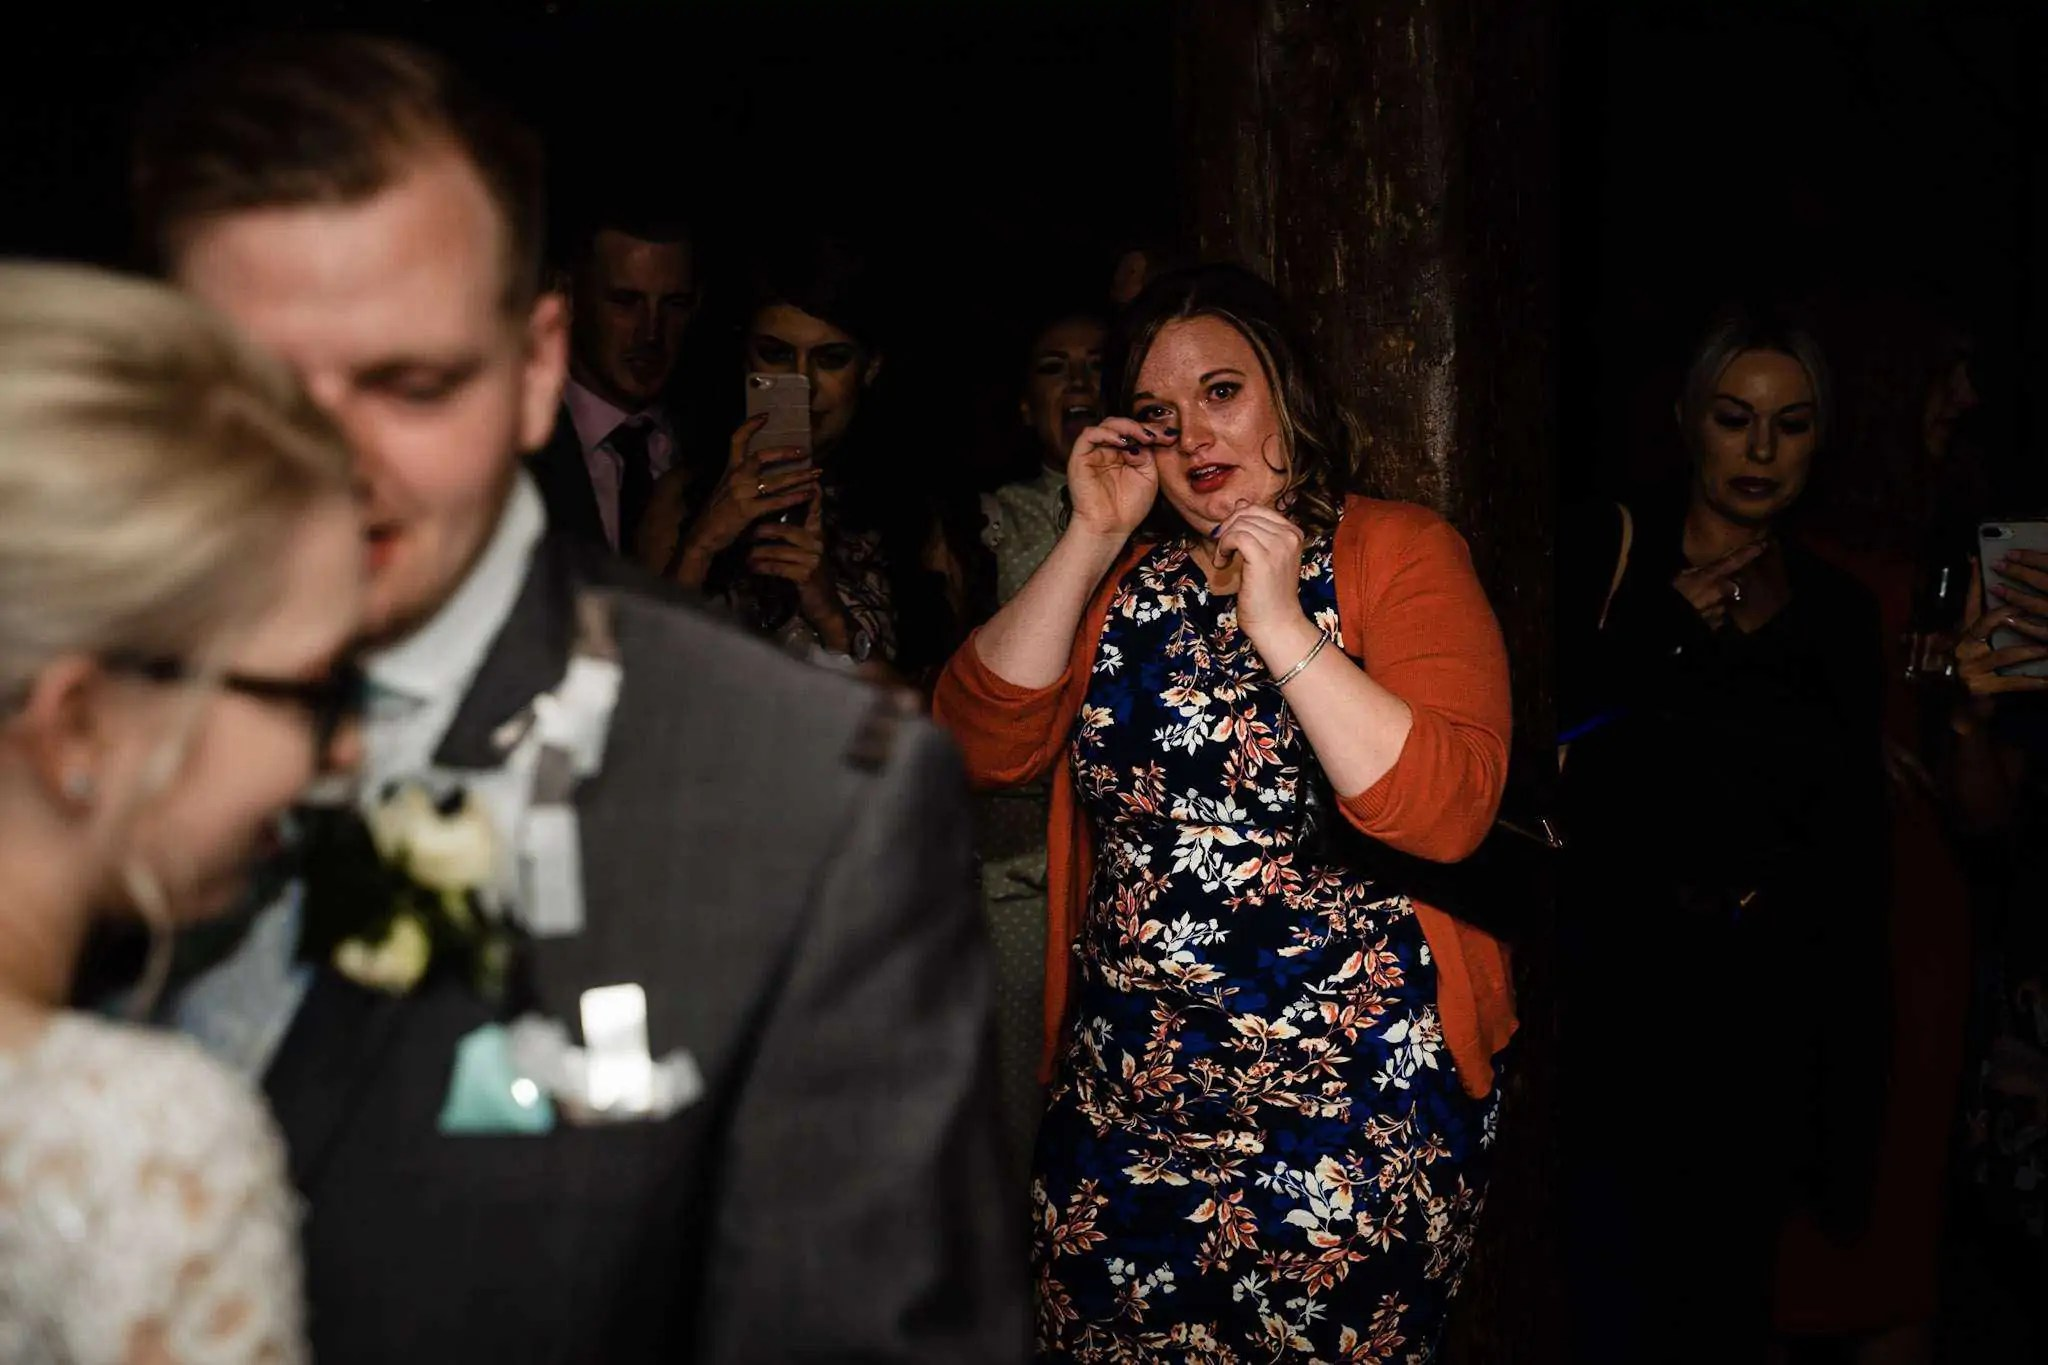 A wedding guest crying during the first dance